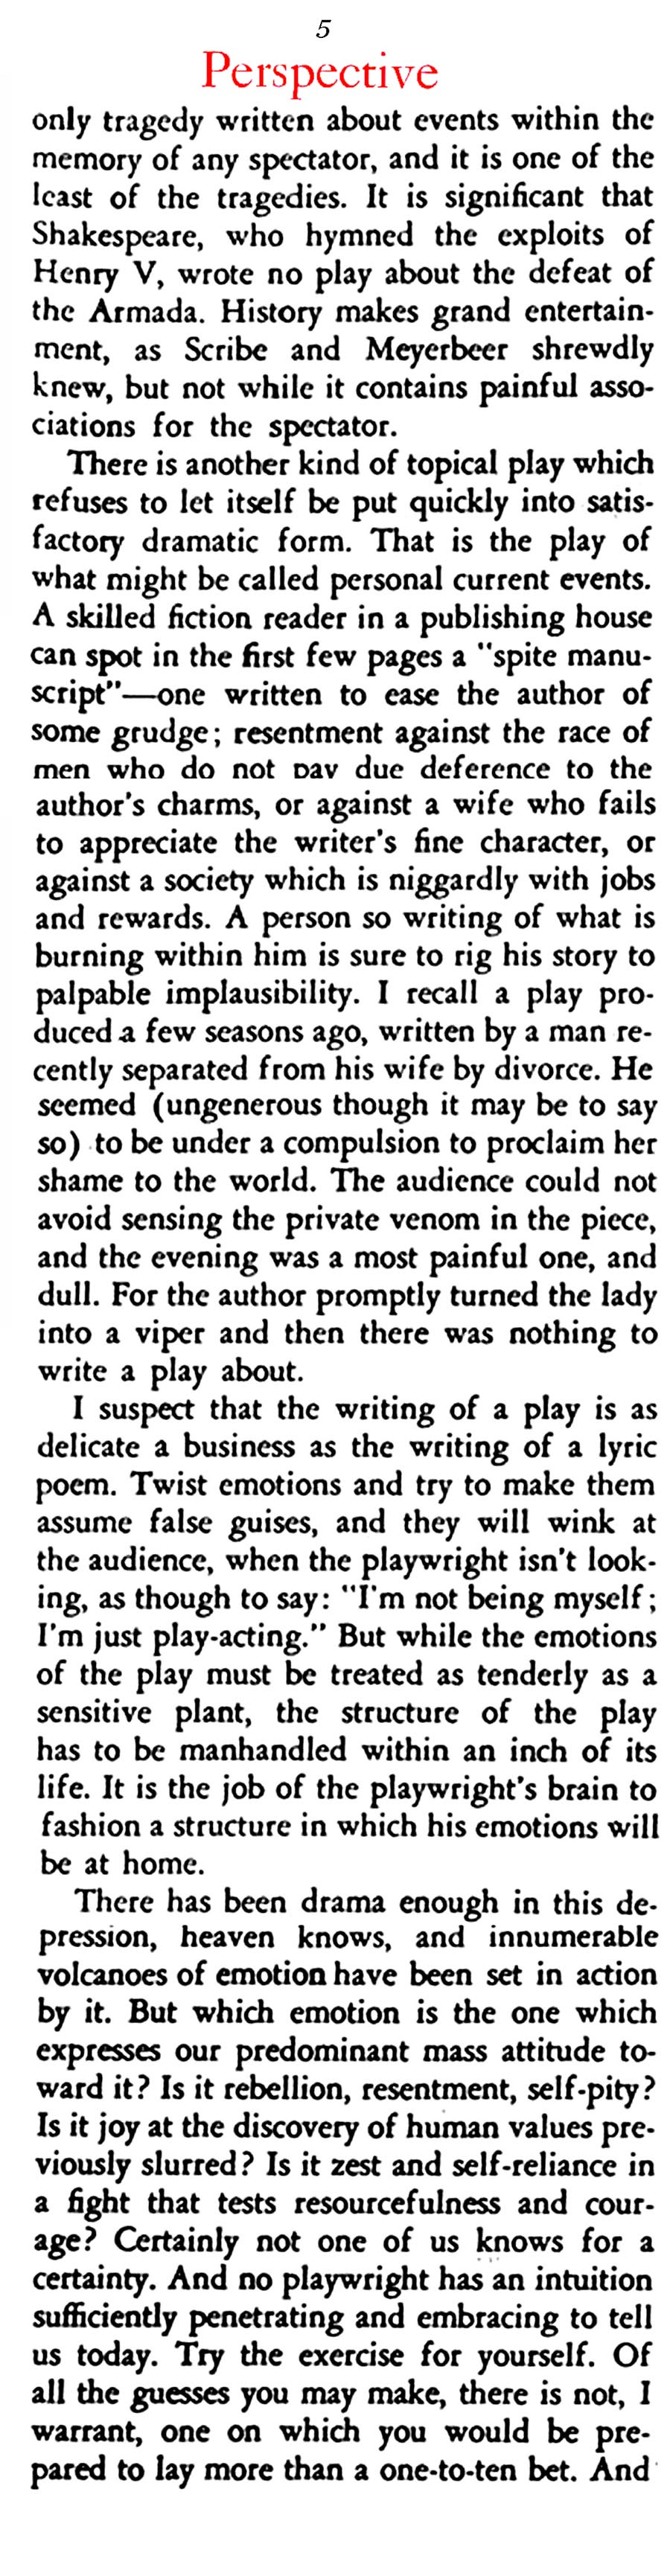 The W.W. I Plays of the Post-War Years (Stage Magazine, 1933)